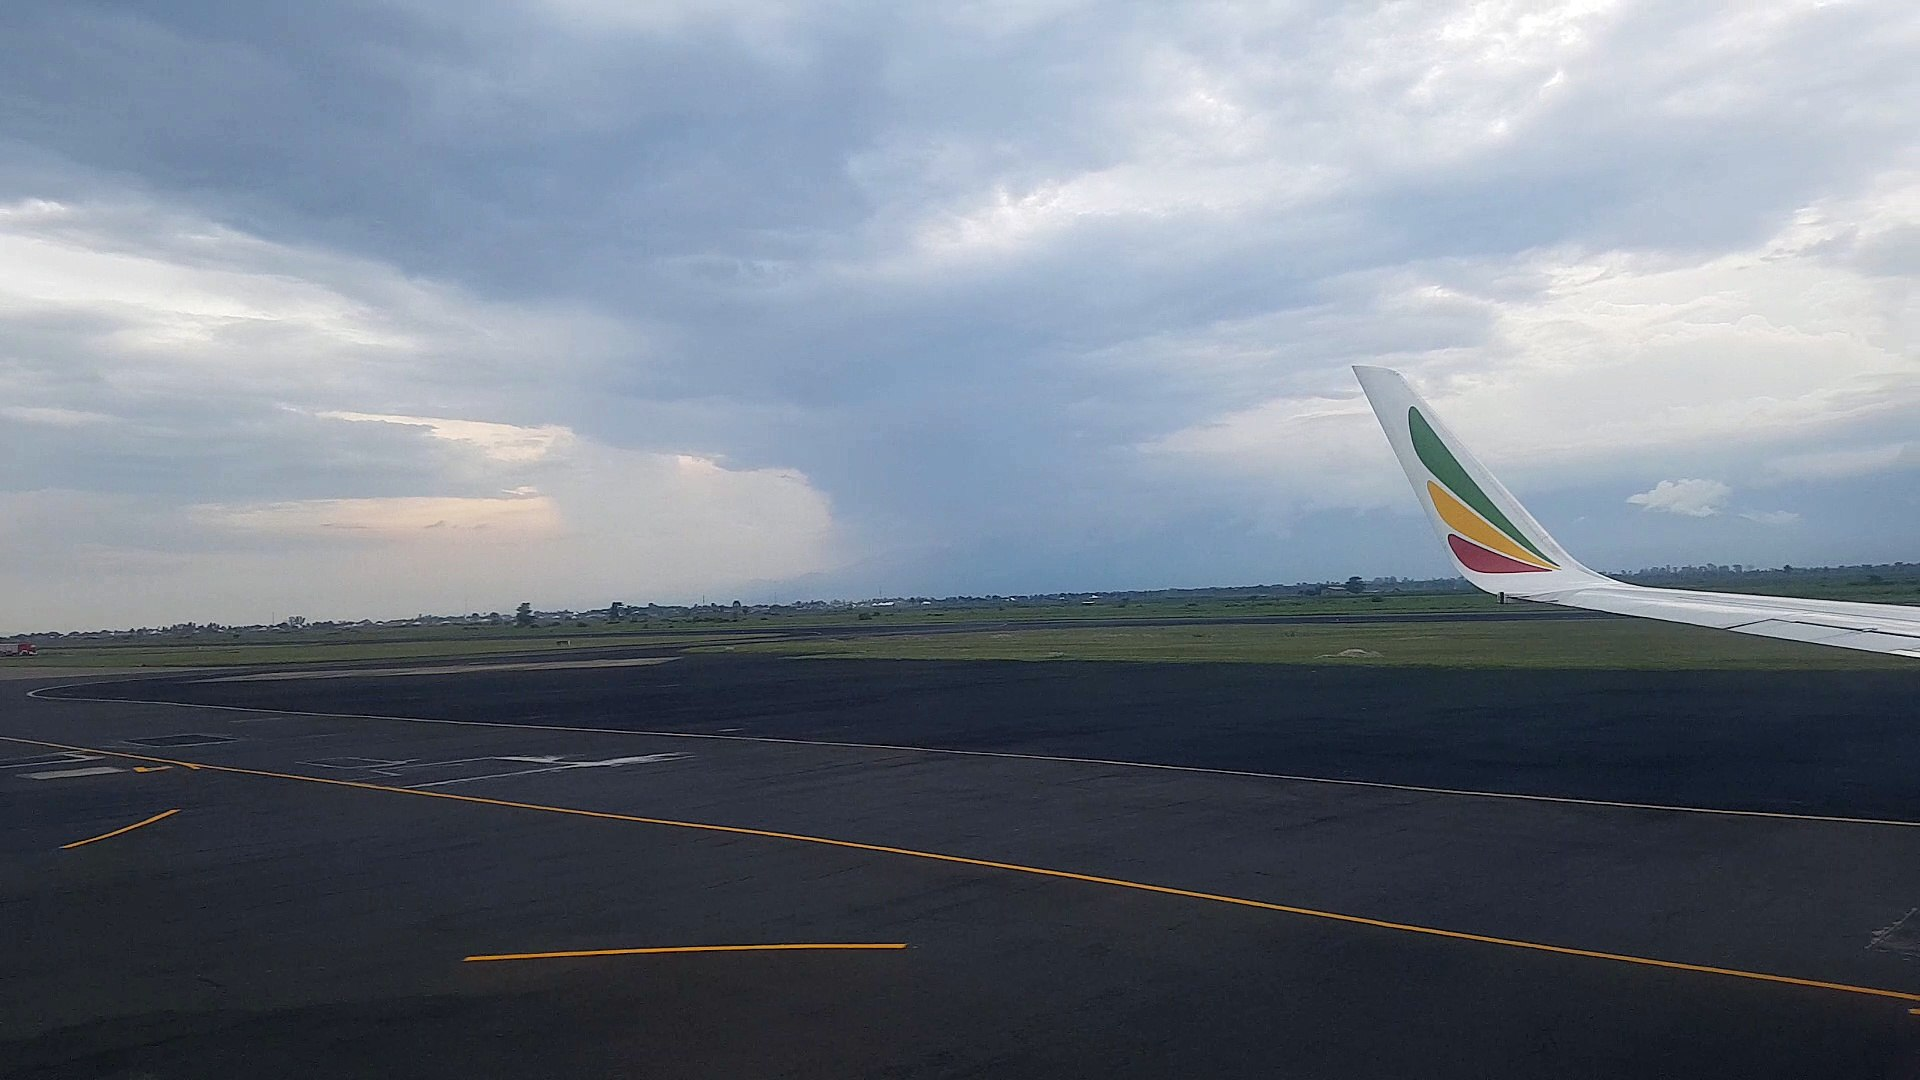 Take off - Flight from Bujumbura, Burundi to Addis Abbeba, Ethiopia with Ethiopian Airlines